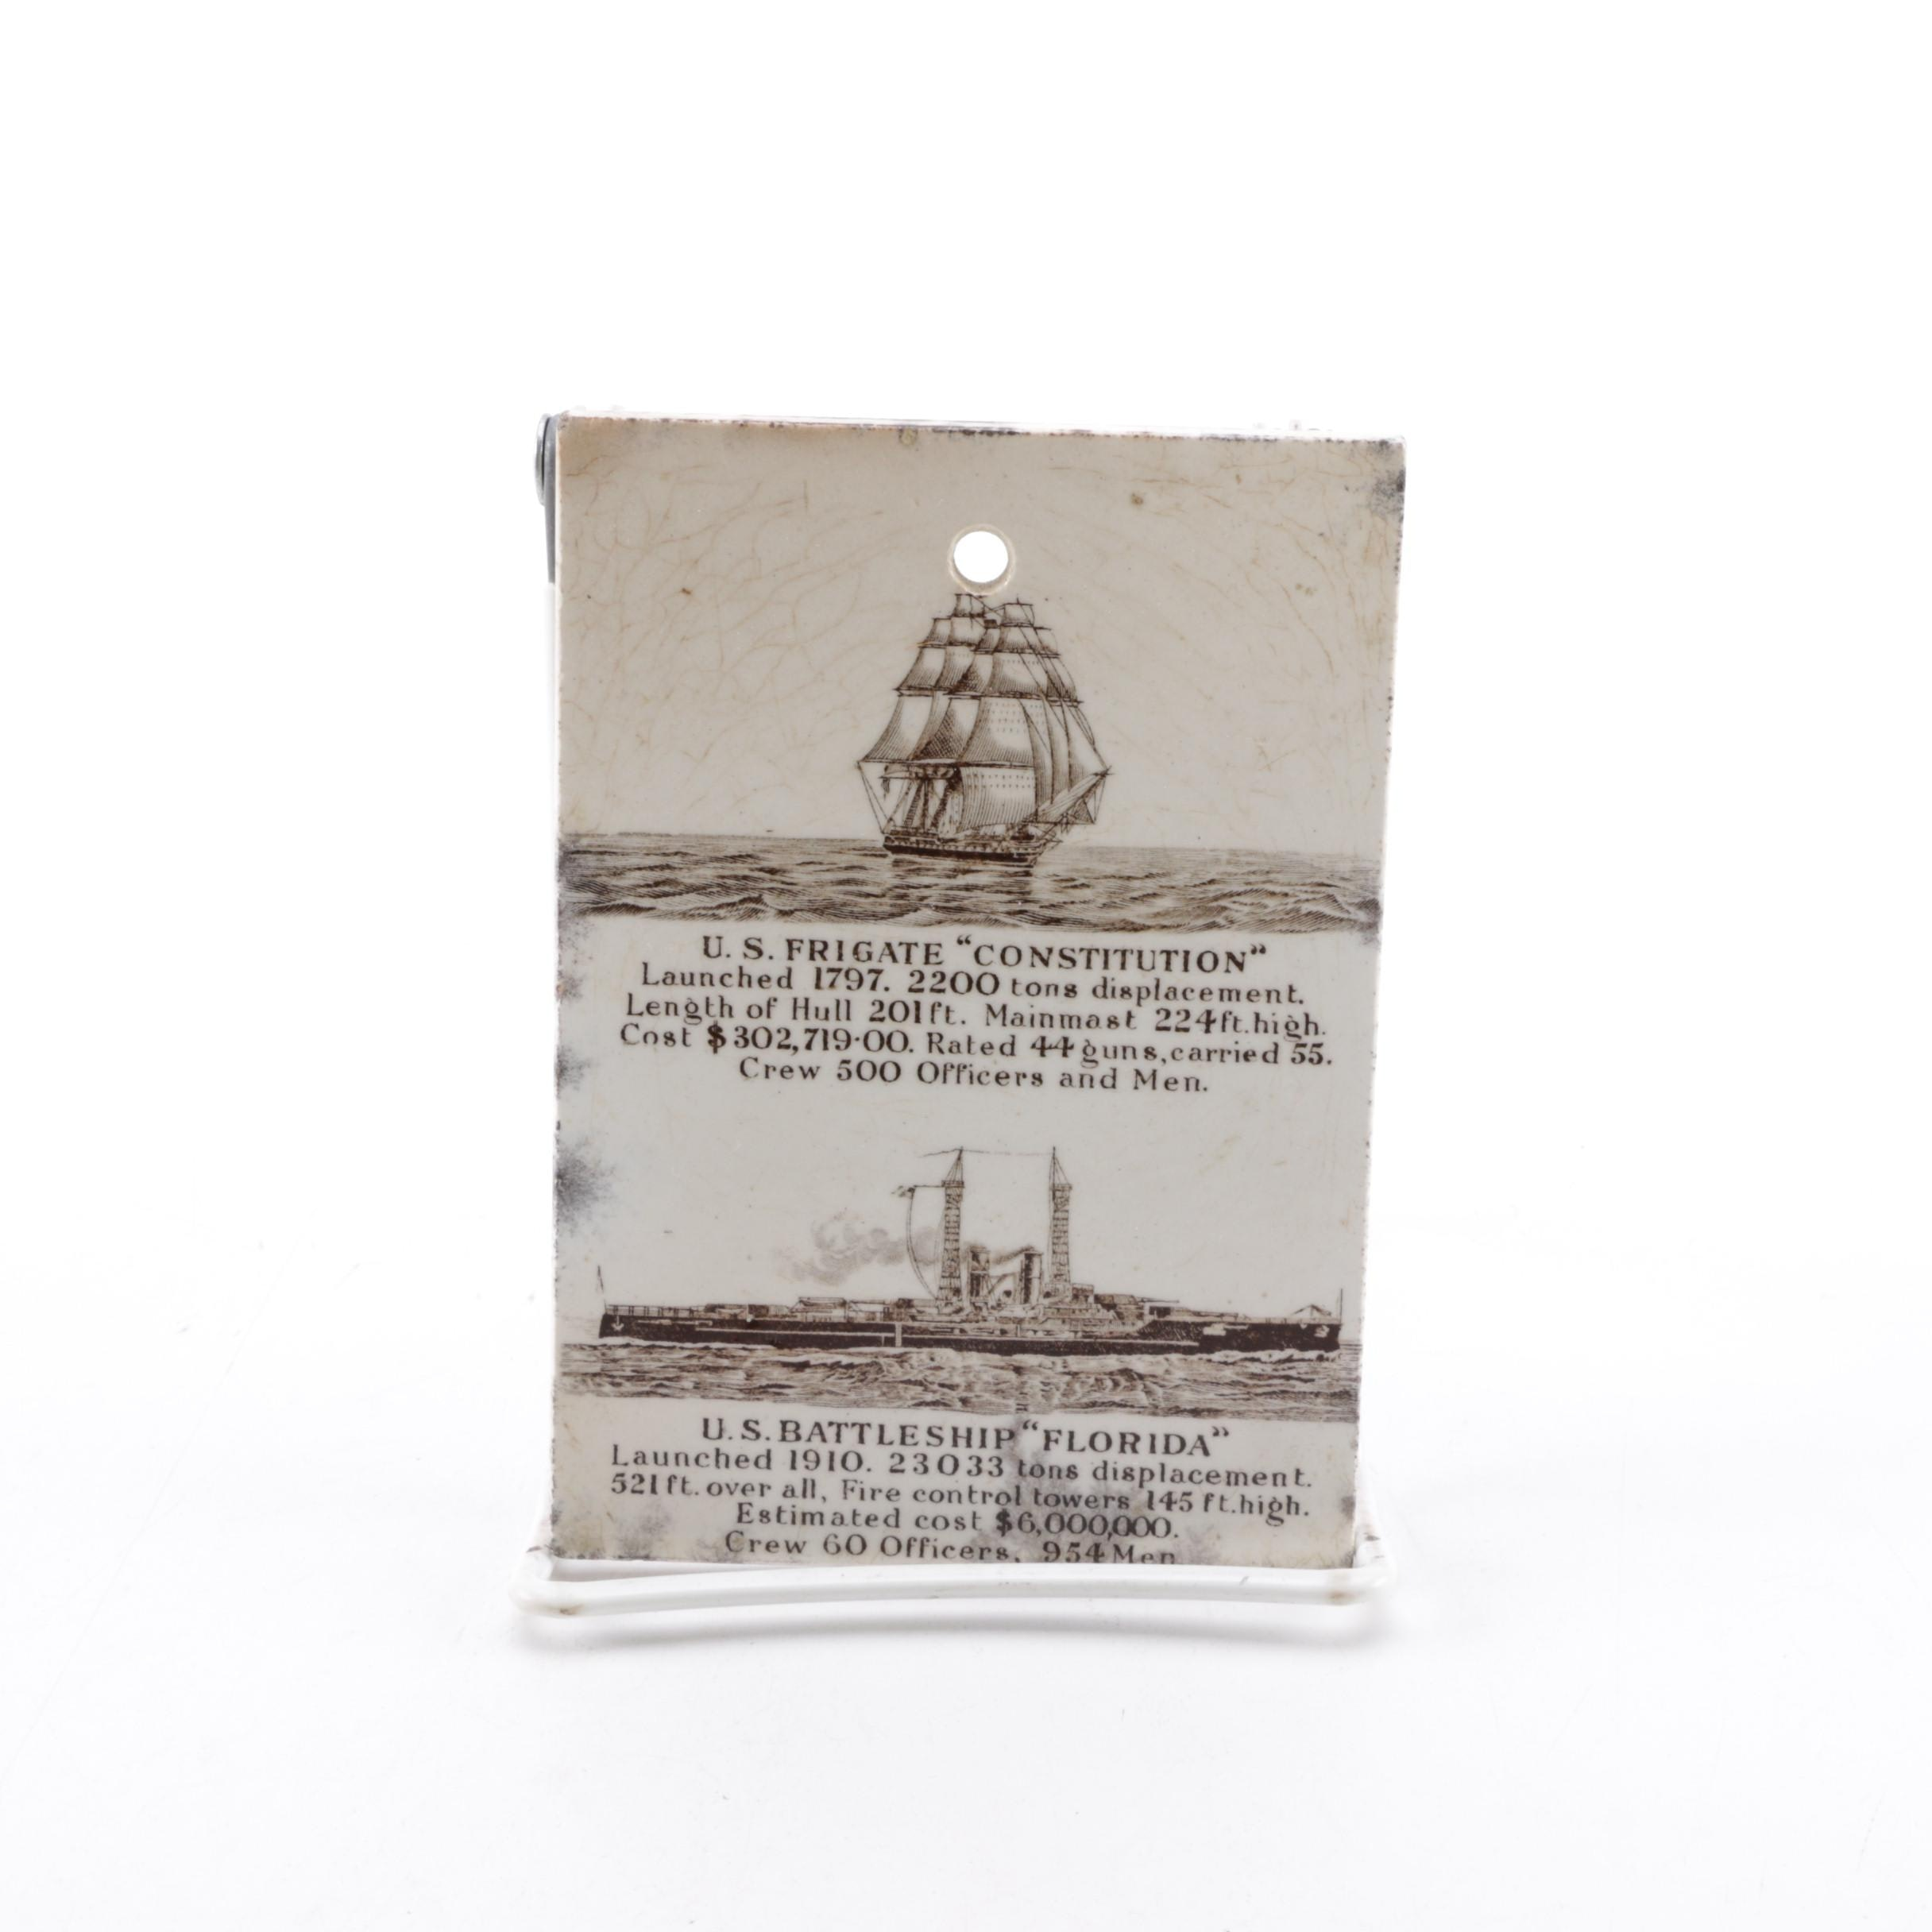 Antique Ceramic Promotional Tile with Calendar and Naval Vessels